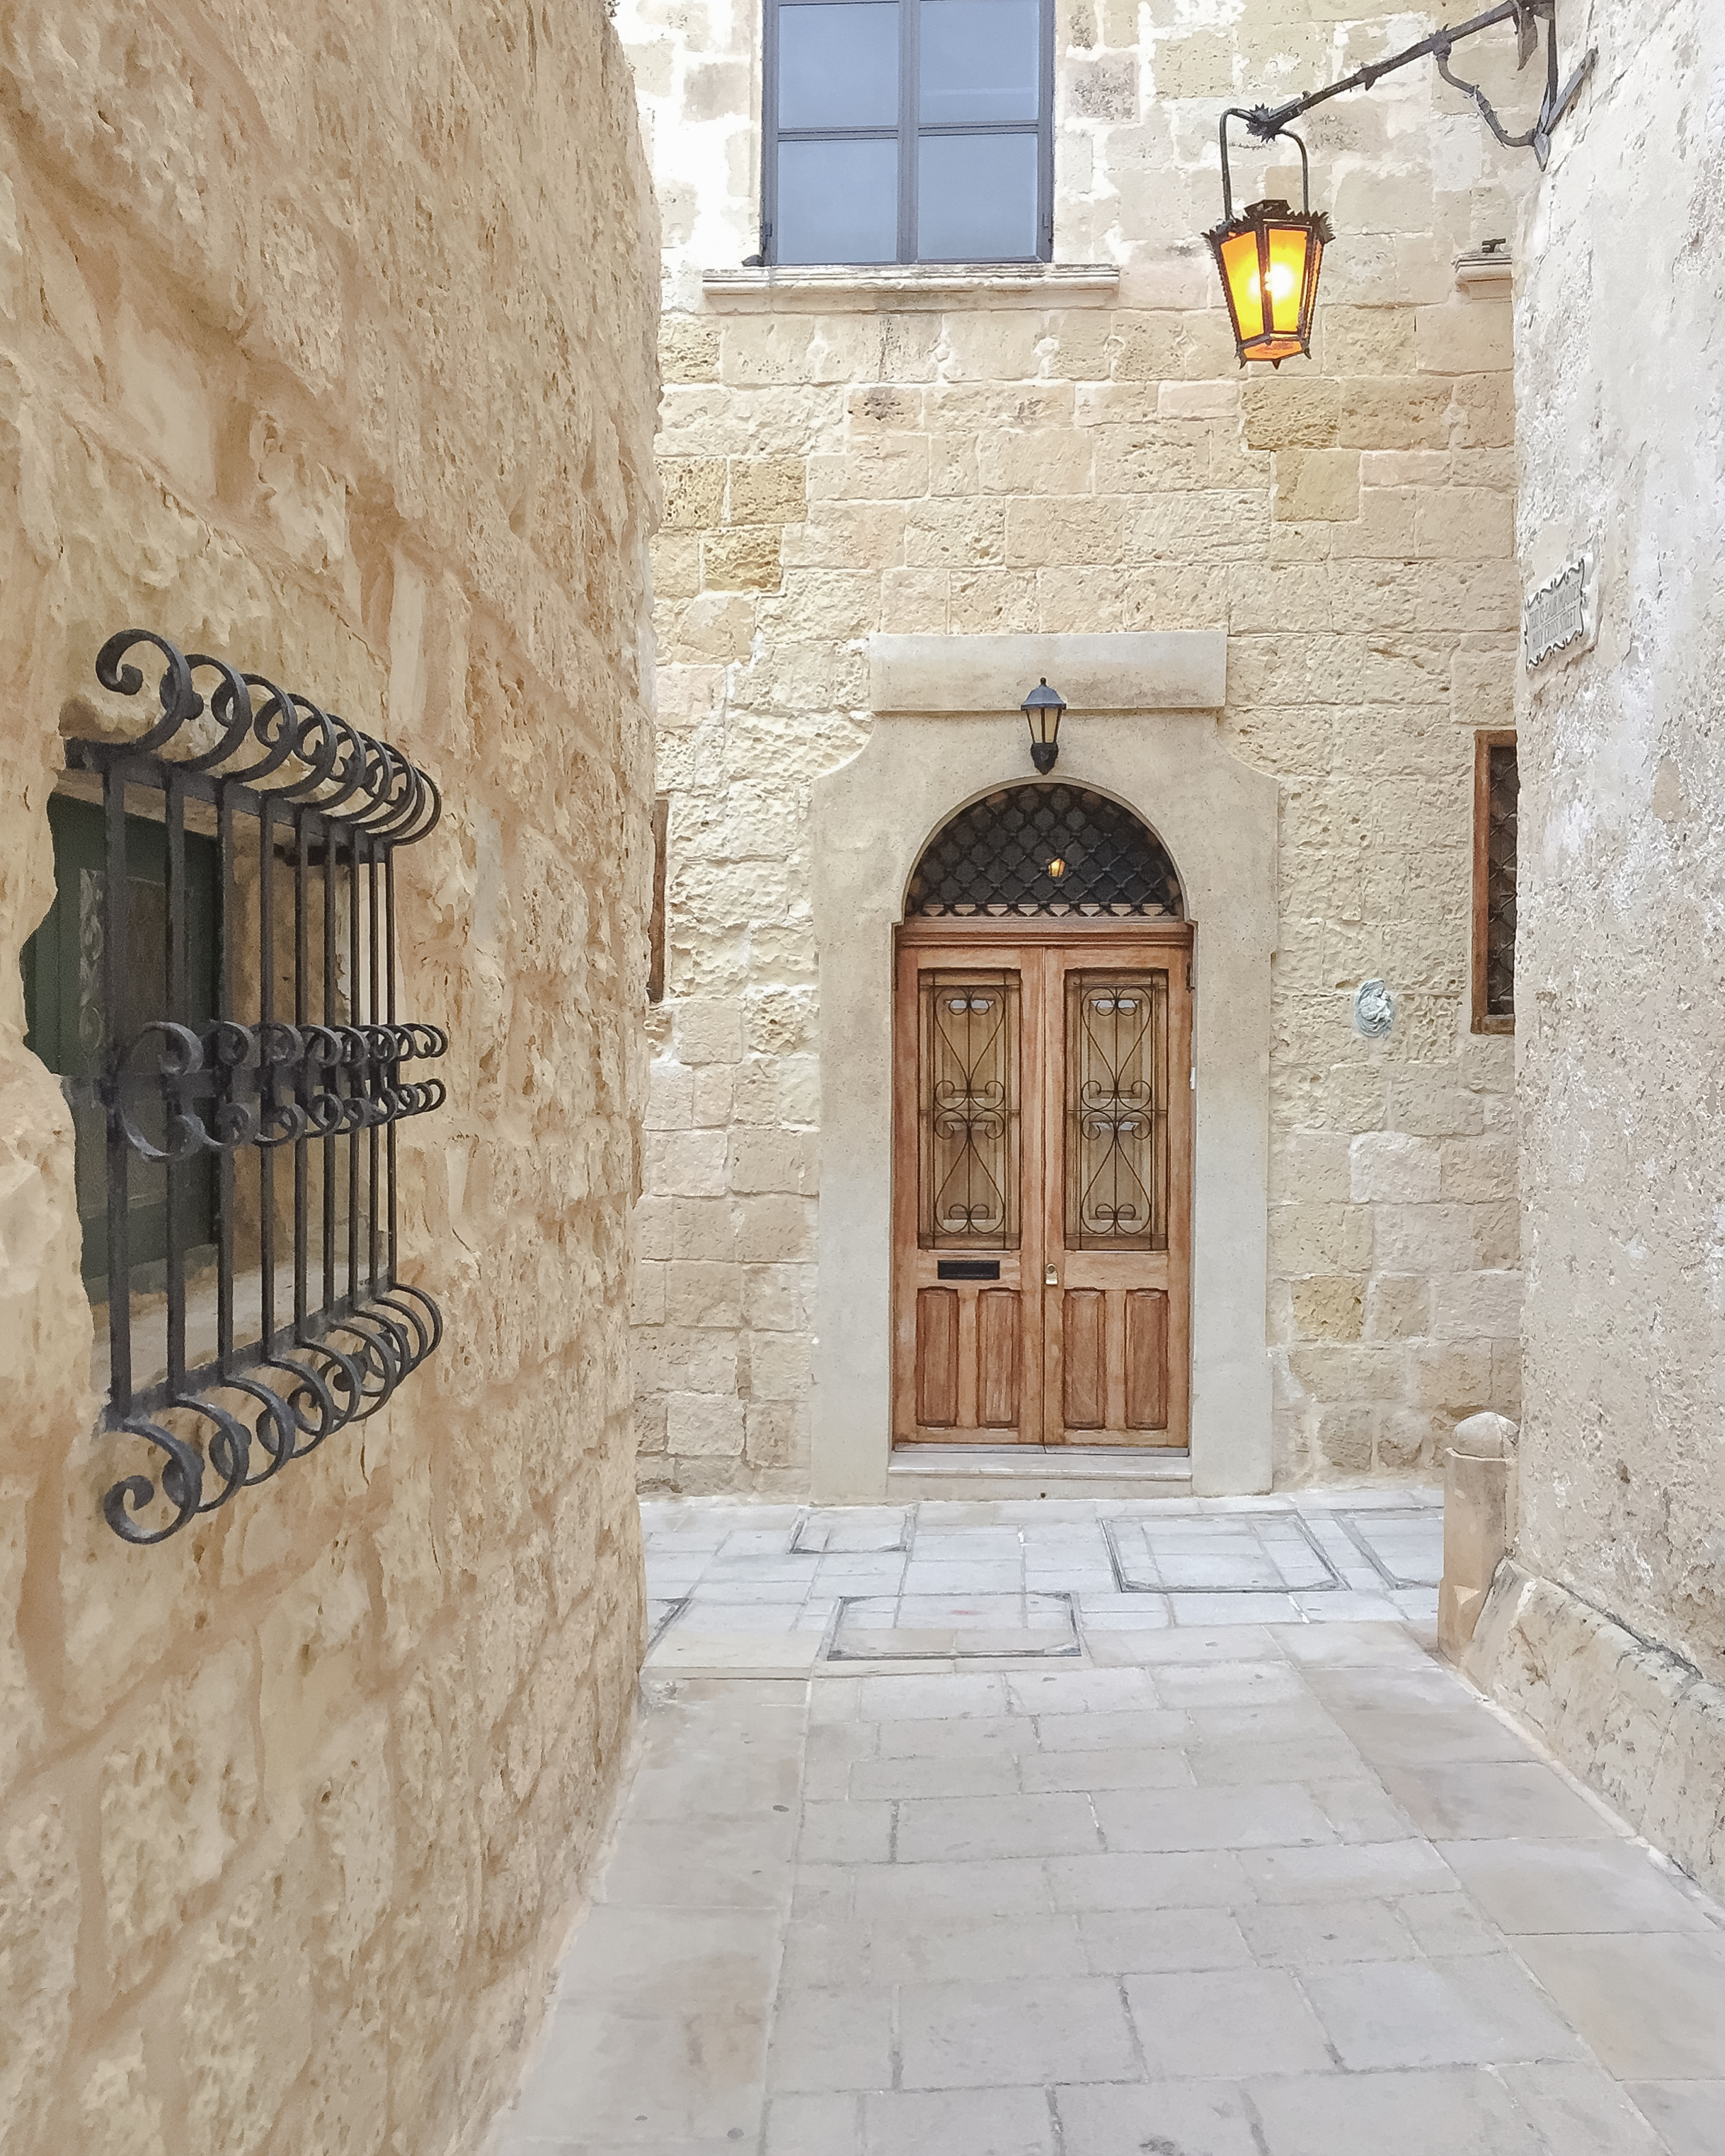 Maltese Door | Window | Street Light | Streets of Malta | Mdina | - Thinking About Appreciation For Quality In Malta | Malta, Europe | DoLessGetMoreDone.com | - Minimal Travel Documentary Photography - search for Liveability | Sustainability